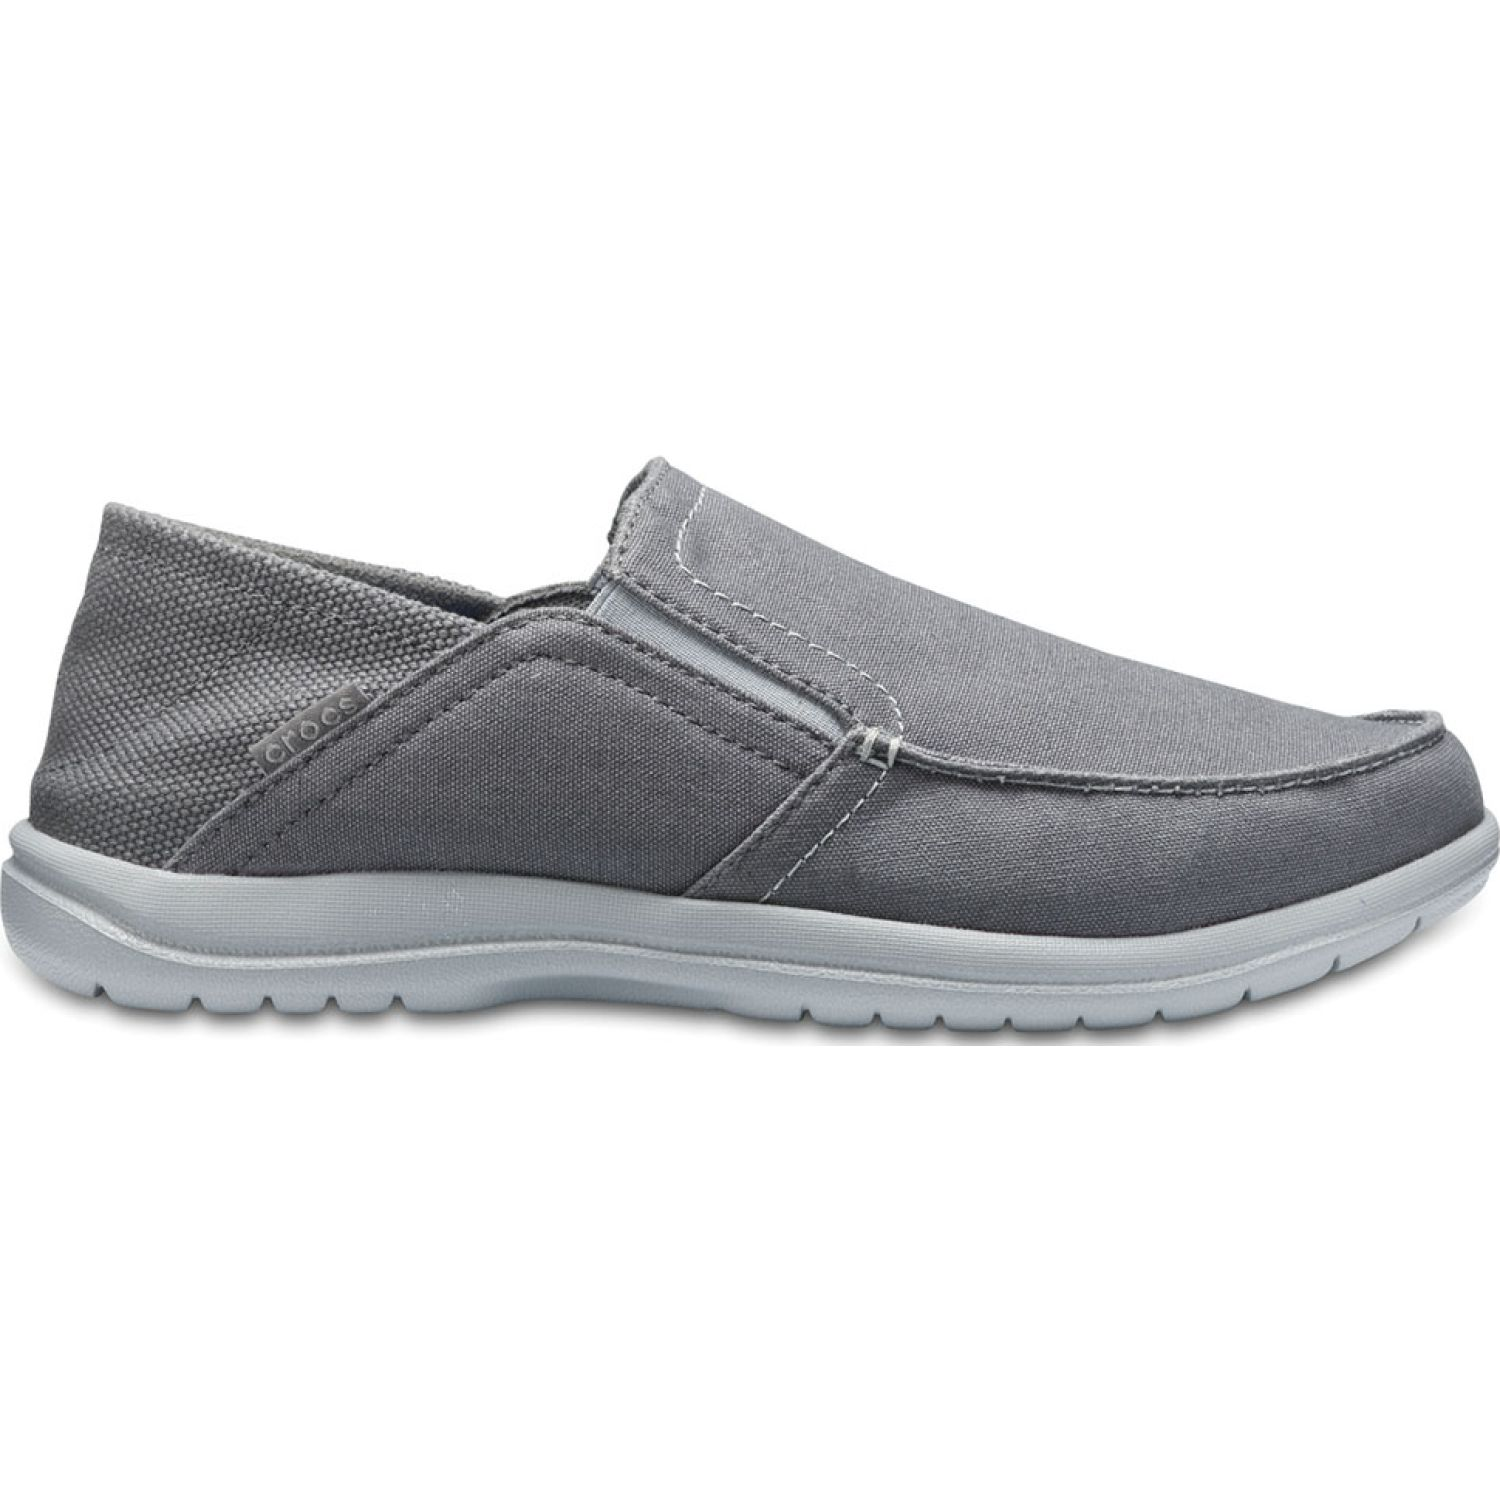 CROCS men's santa cruz convertible slip-on Plomo Oxfords